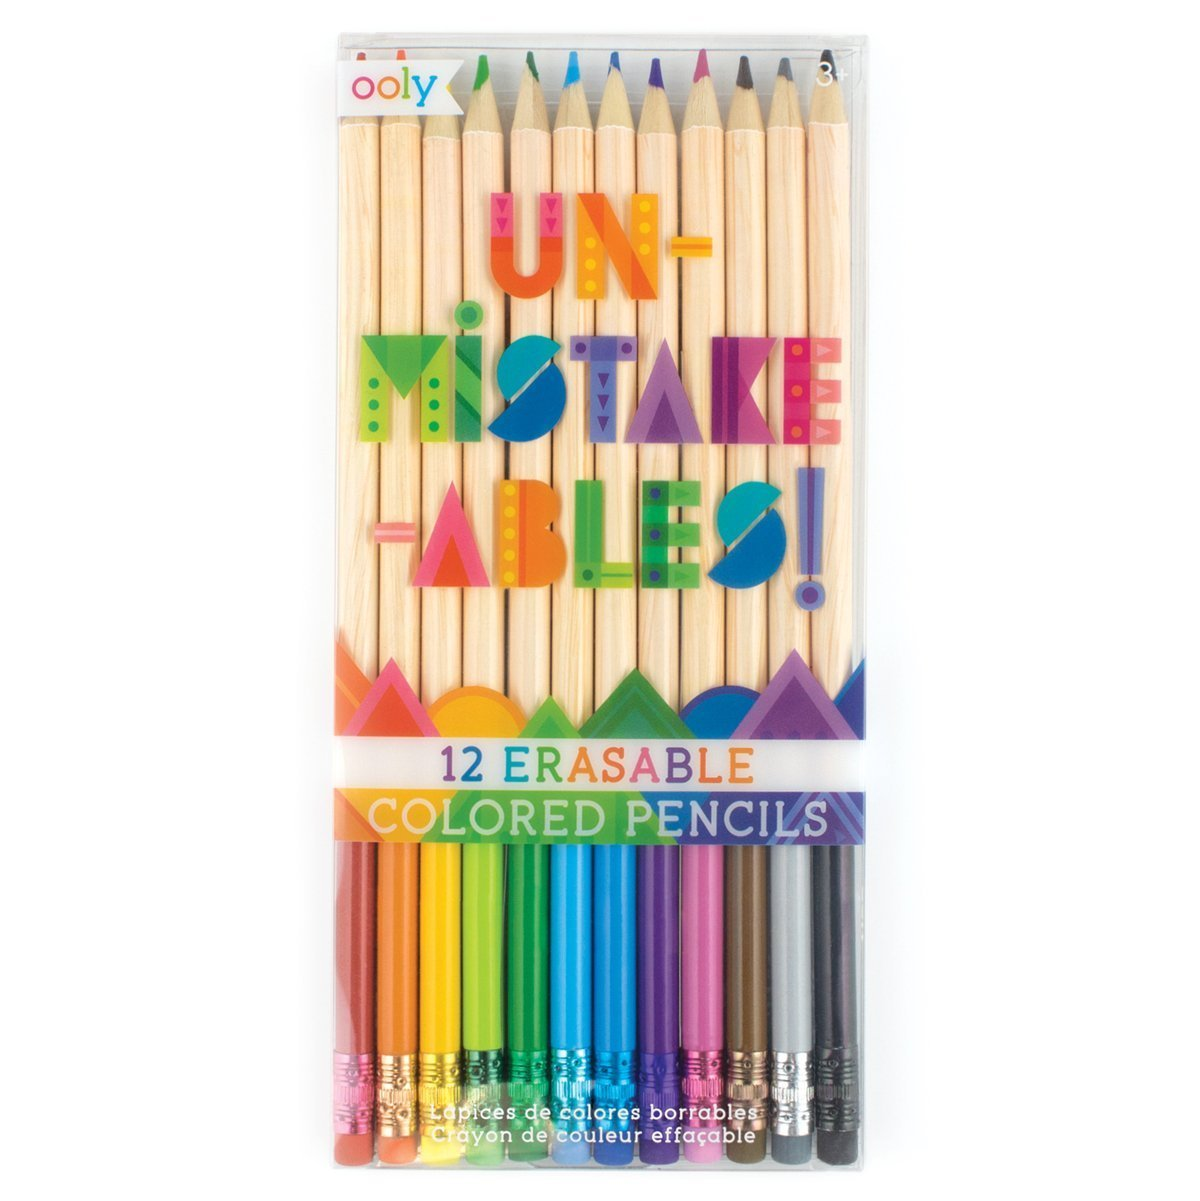 Set of 12 Ooly UnMistakeAbles Erasable Colored Pencils